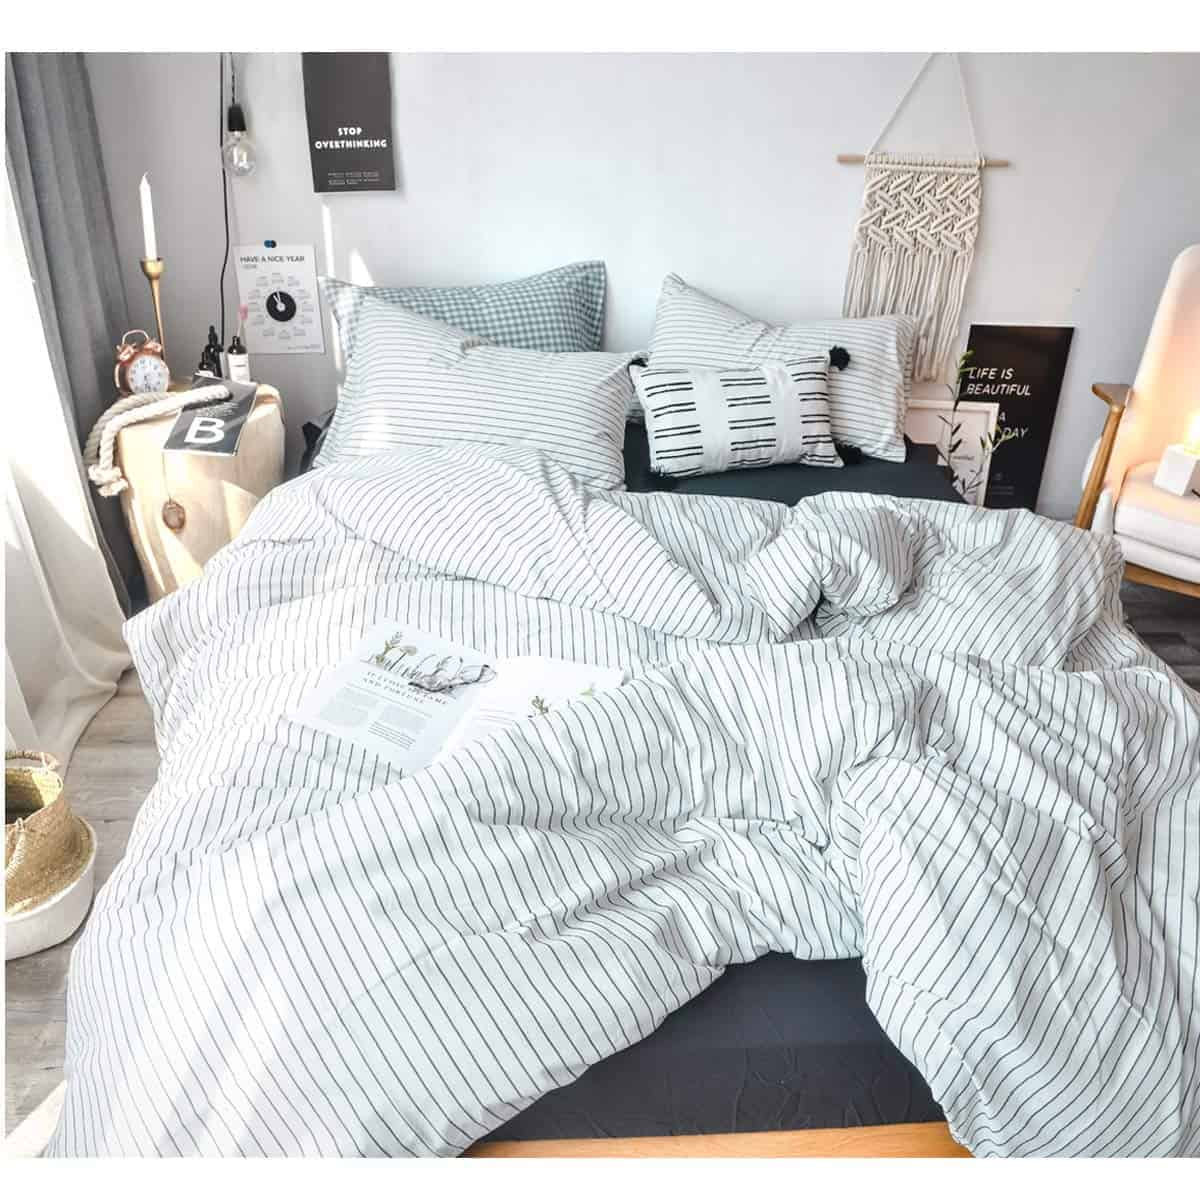 20 Cozy Dorm Room Ideas to Snuggle Up To